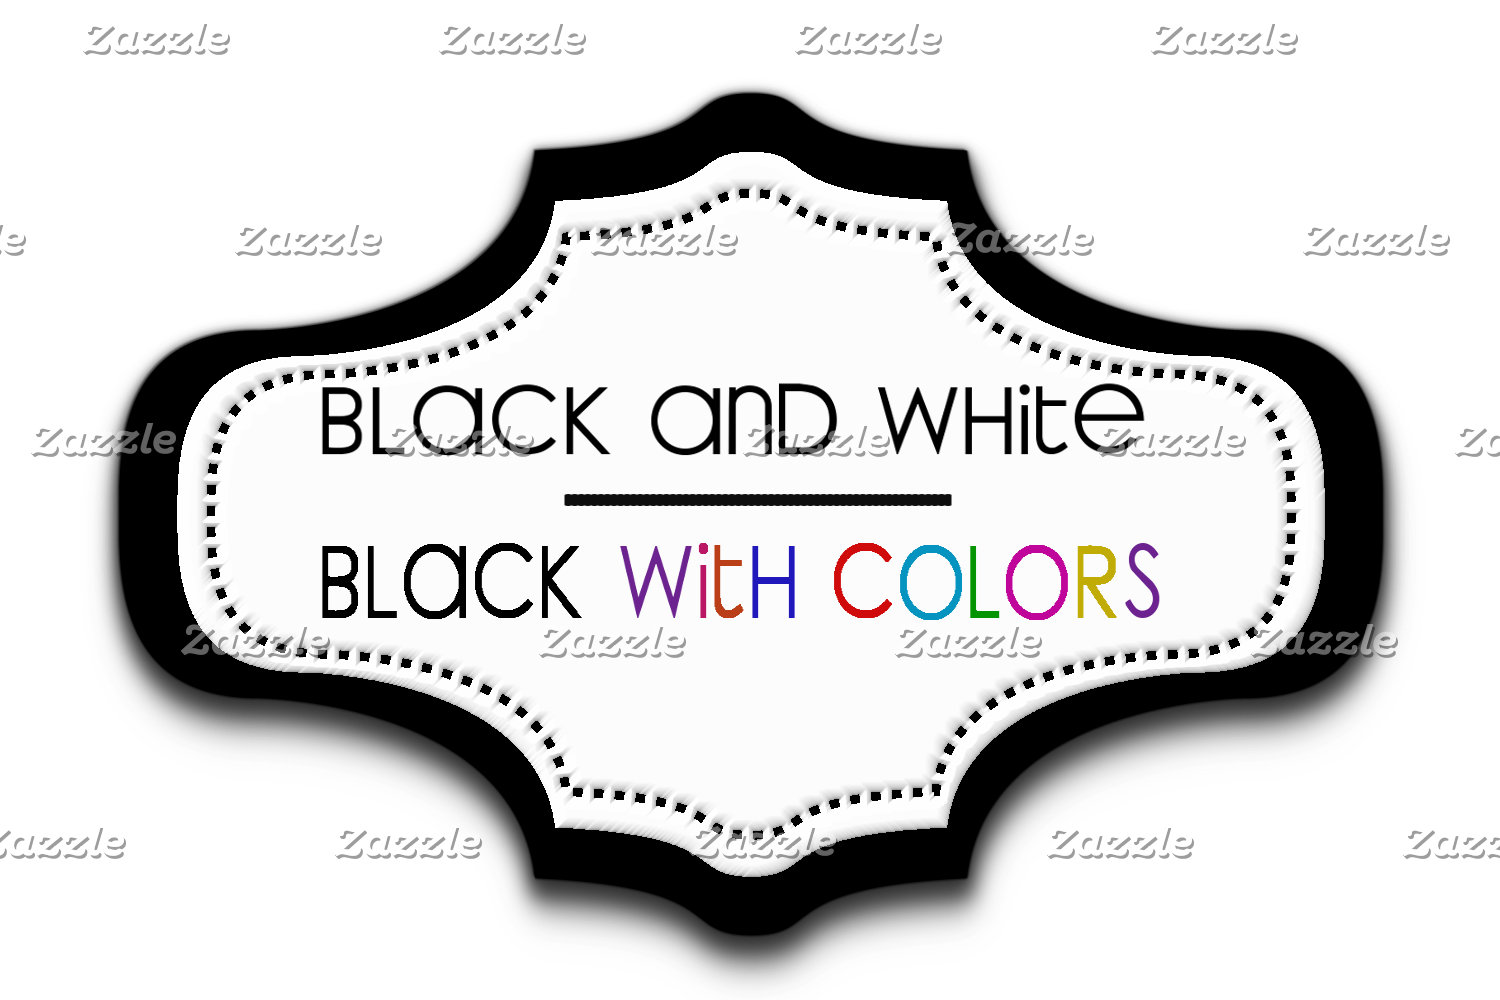 Blacks with white / with colors